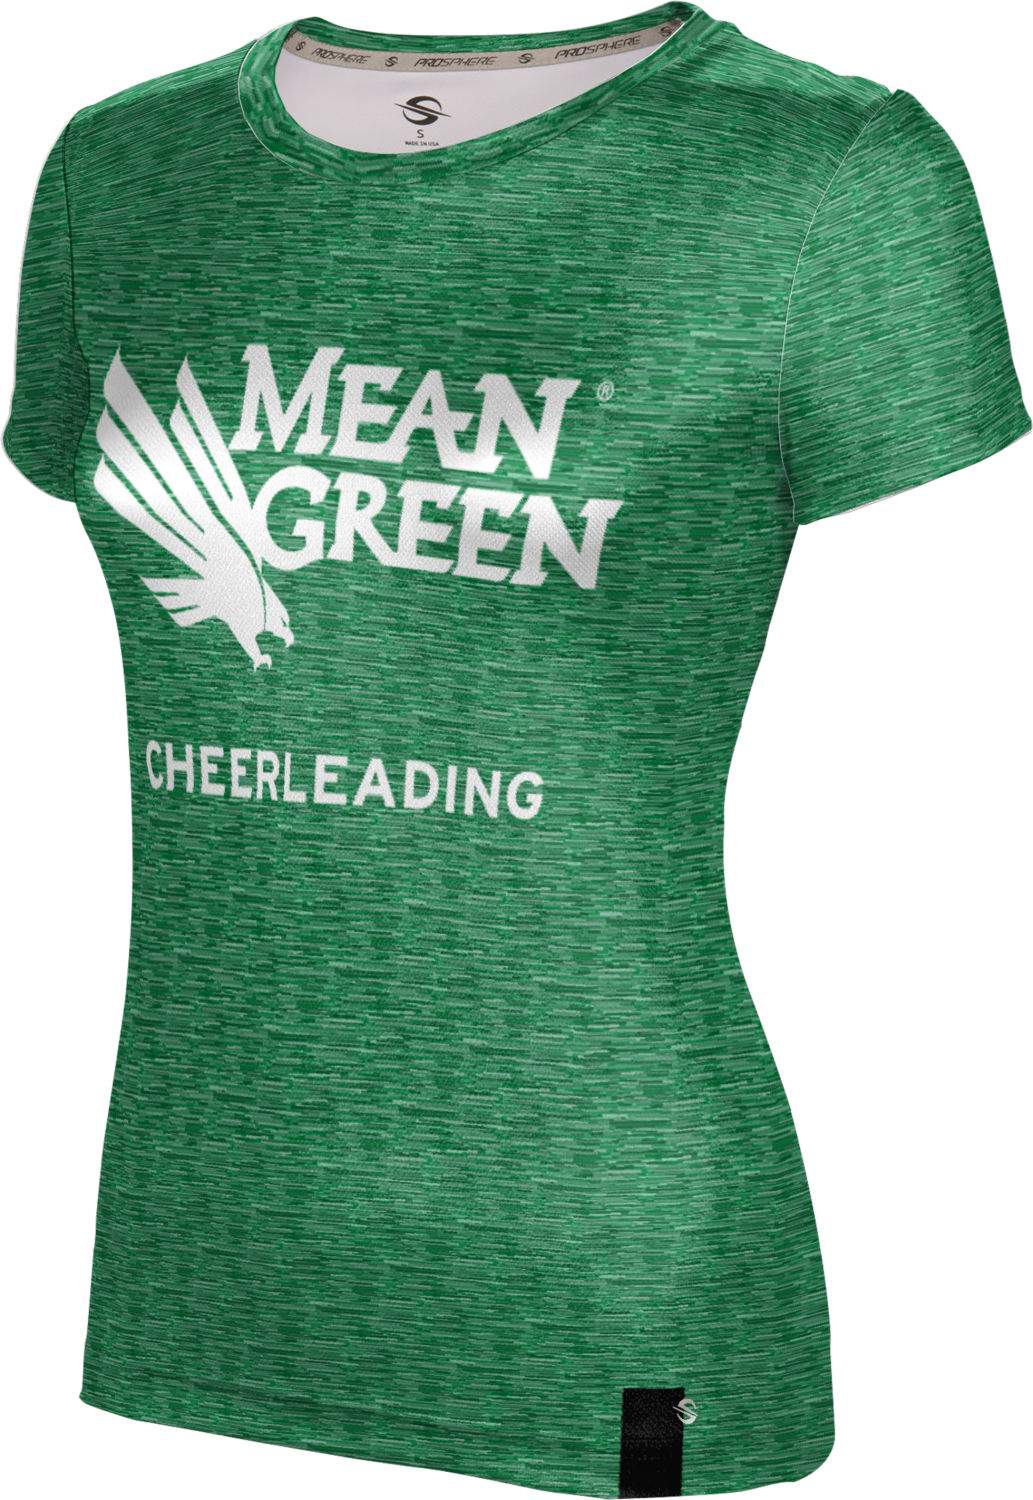 ProSphere Cheerleading Women's Short Sleeve Tee